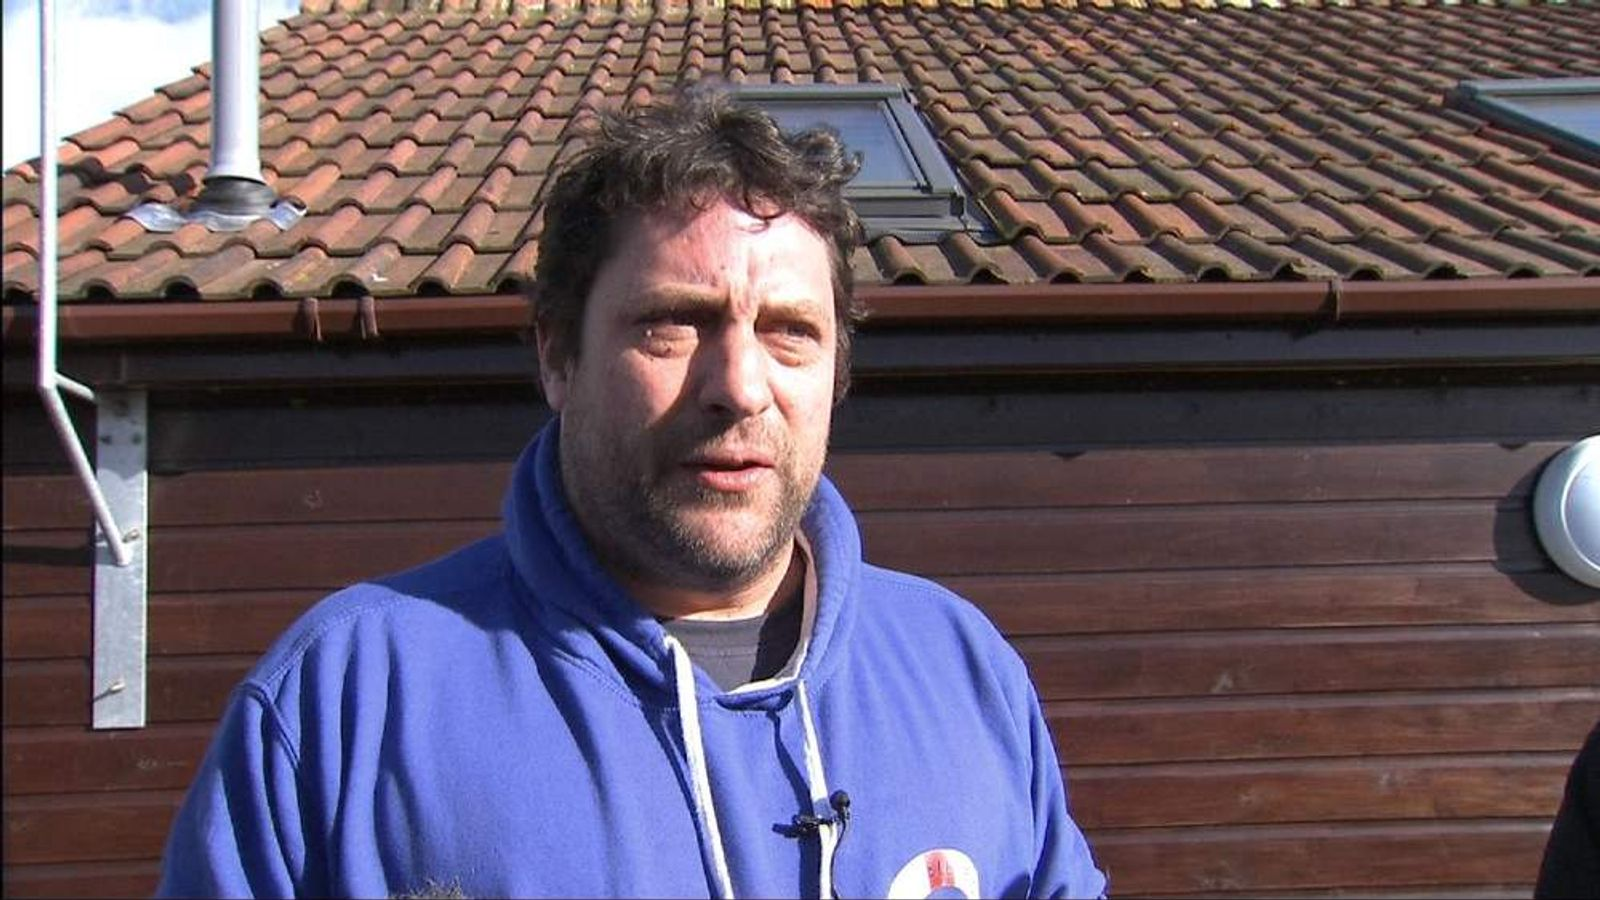 Jim Winkworth wants an apology from the Environment Agency